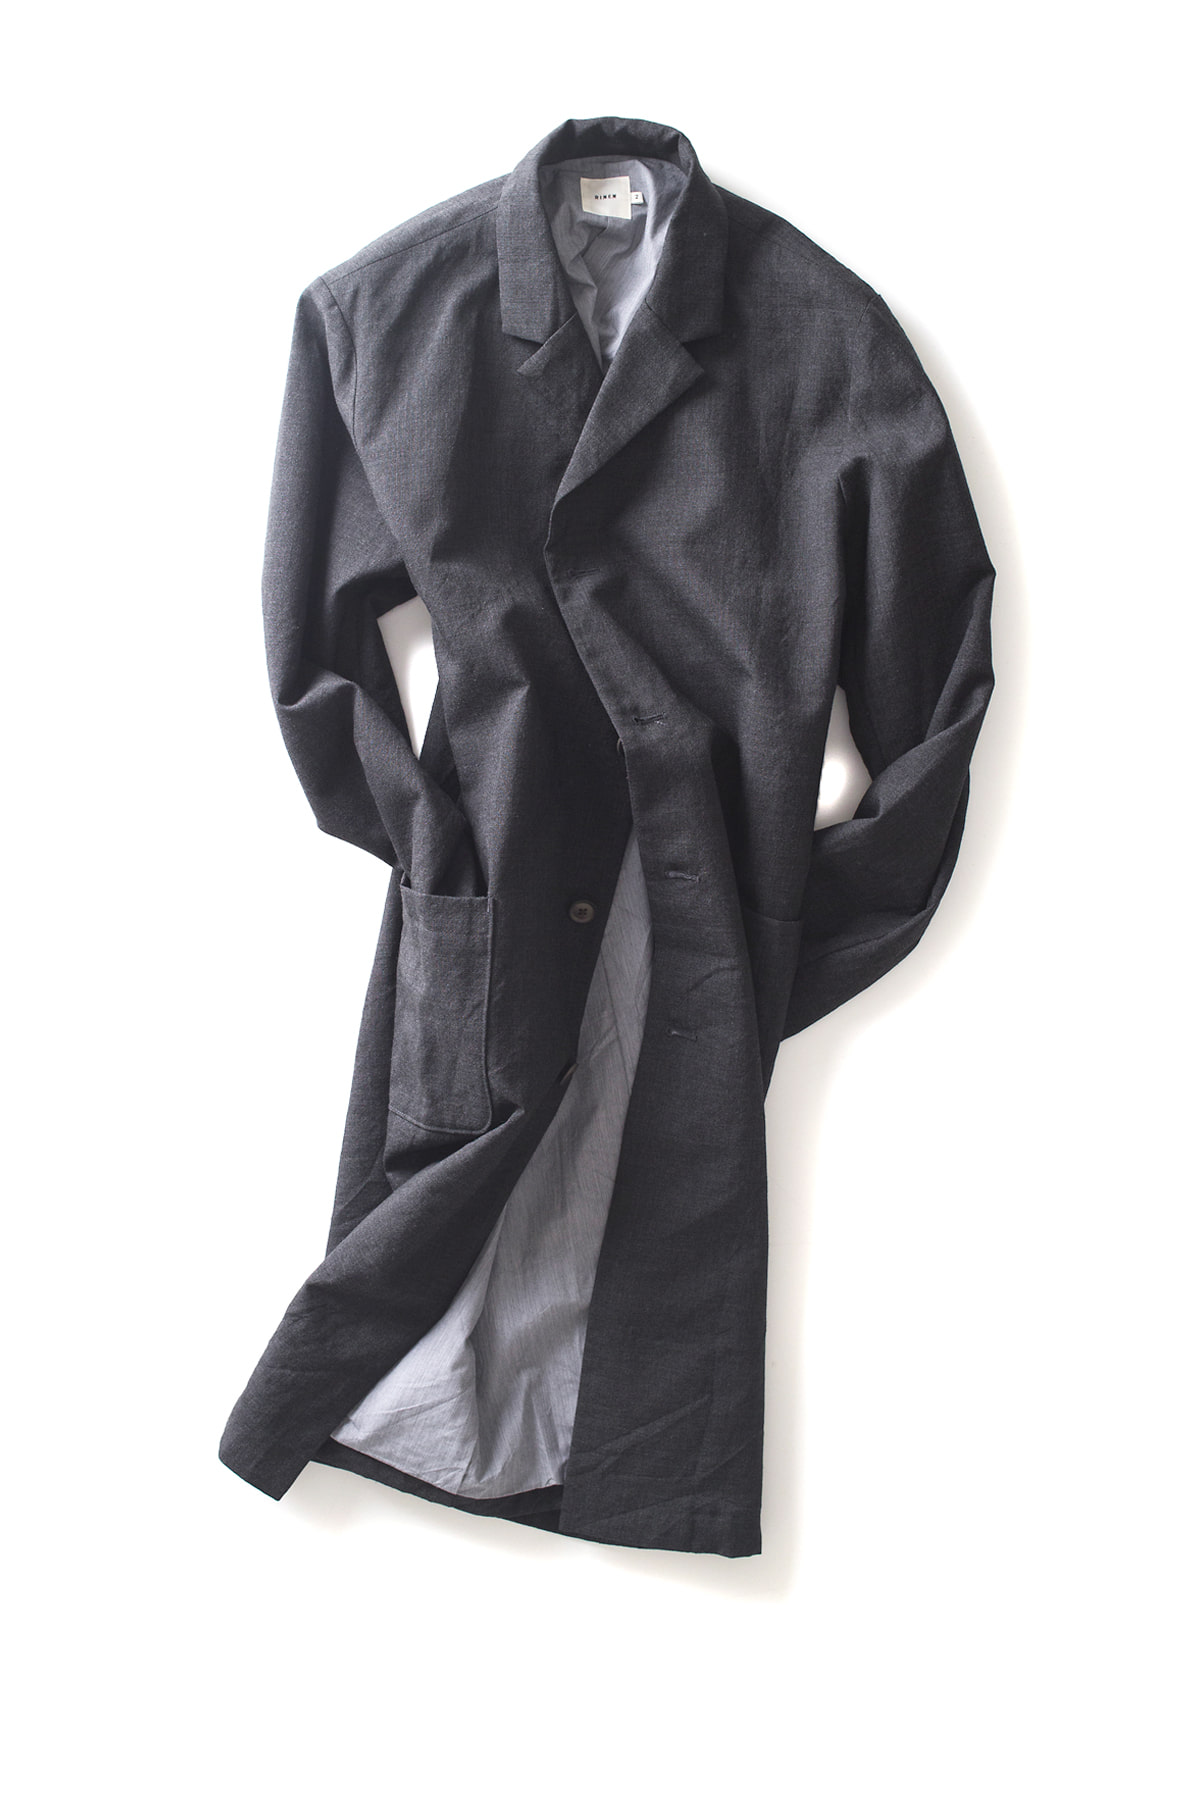 RINEN : Tailored Coat (Charcoal)